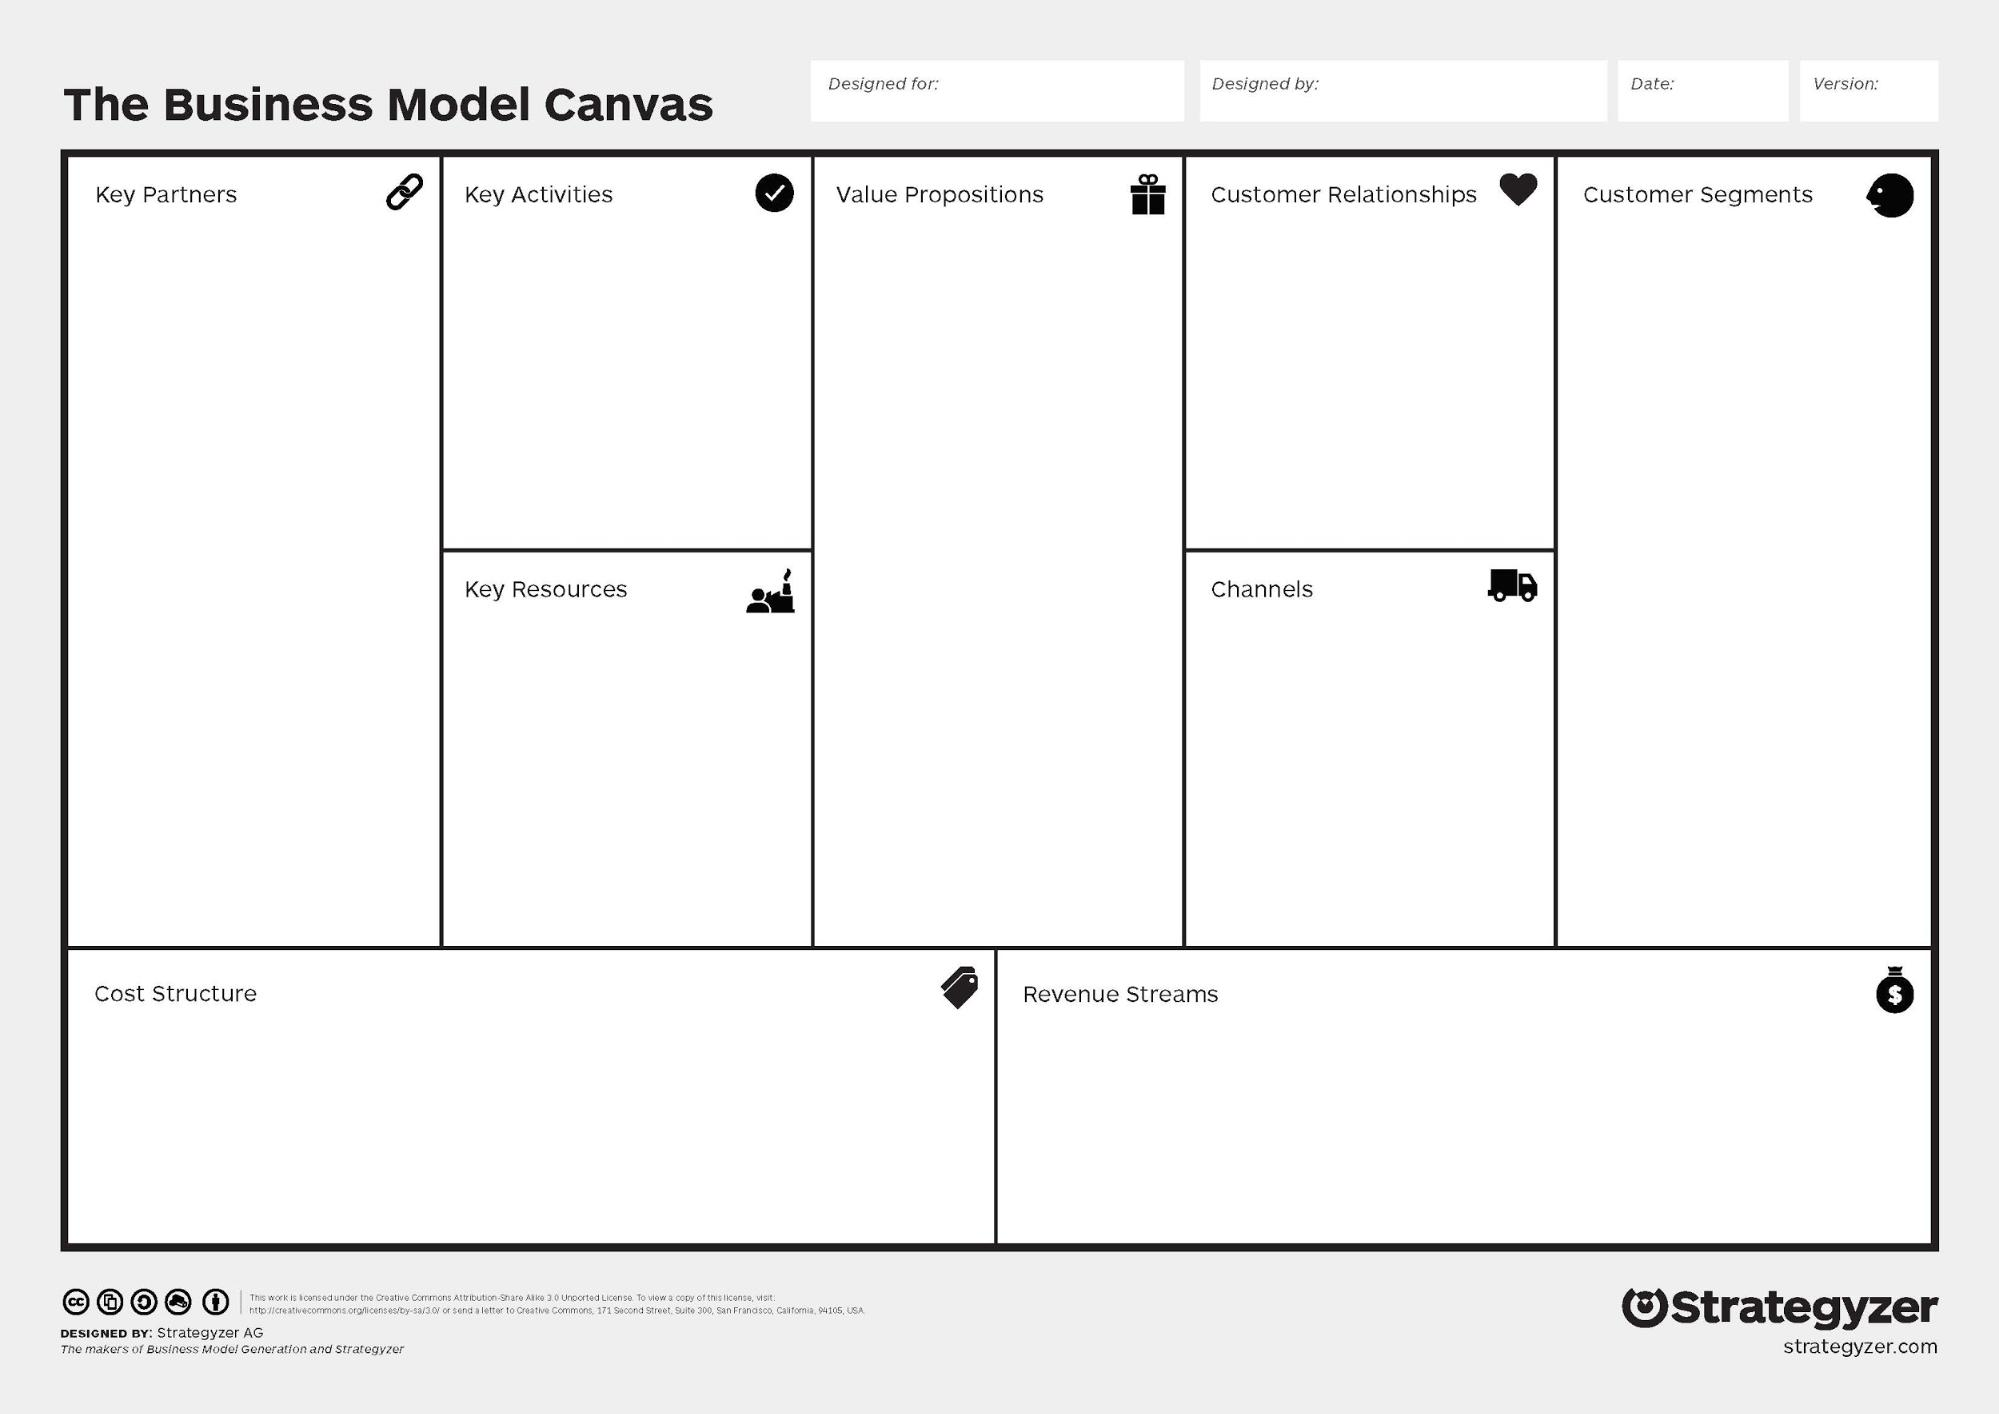 The Business Model Canvas tool helps you plan and map out different elements of a business model. This canvas contains the following elements: Key Partners, Key Activities, Key Resources, Value Propositions, Customer Relationships, Channels, Customer Segments, Cost Structure, and Revenue Streams. This image is linked to a video that fully explains how this particular canvas works. You can access the video to hear an audio description of the canvas at https://www.youtube.com/watch?time_continue=2&v=QoAOzMTLP5s